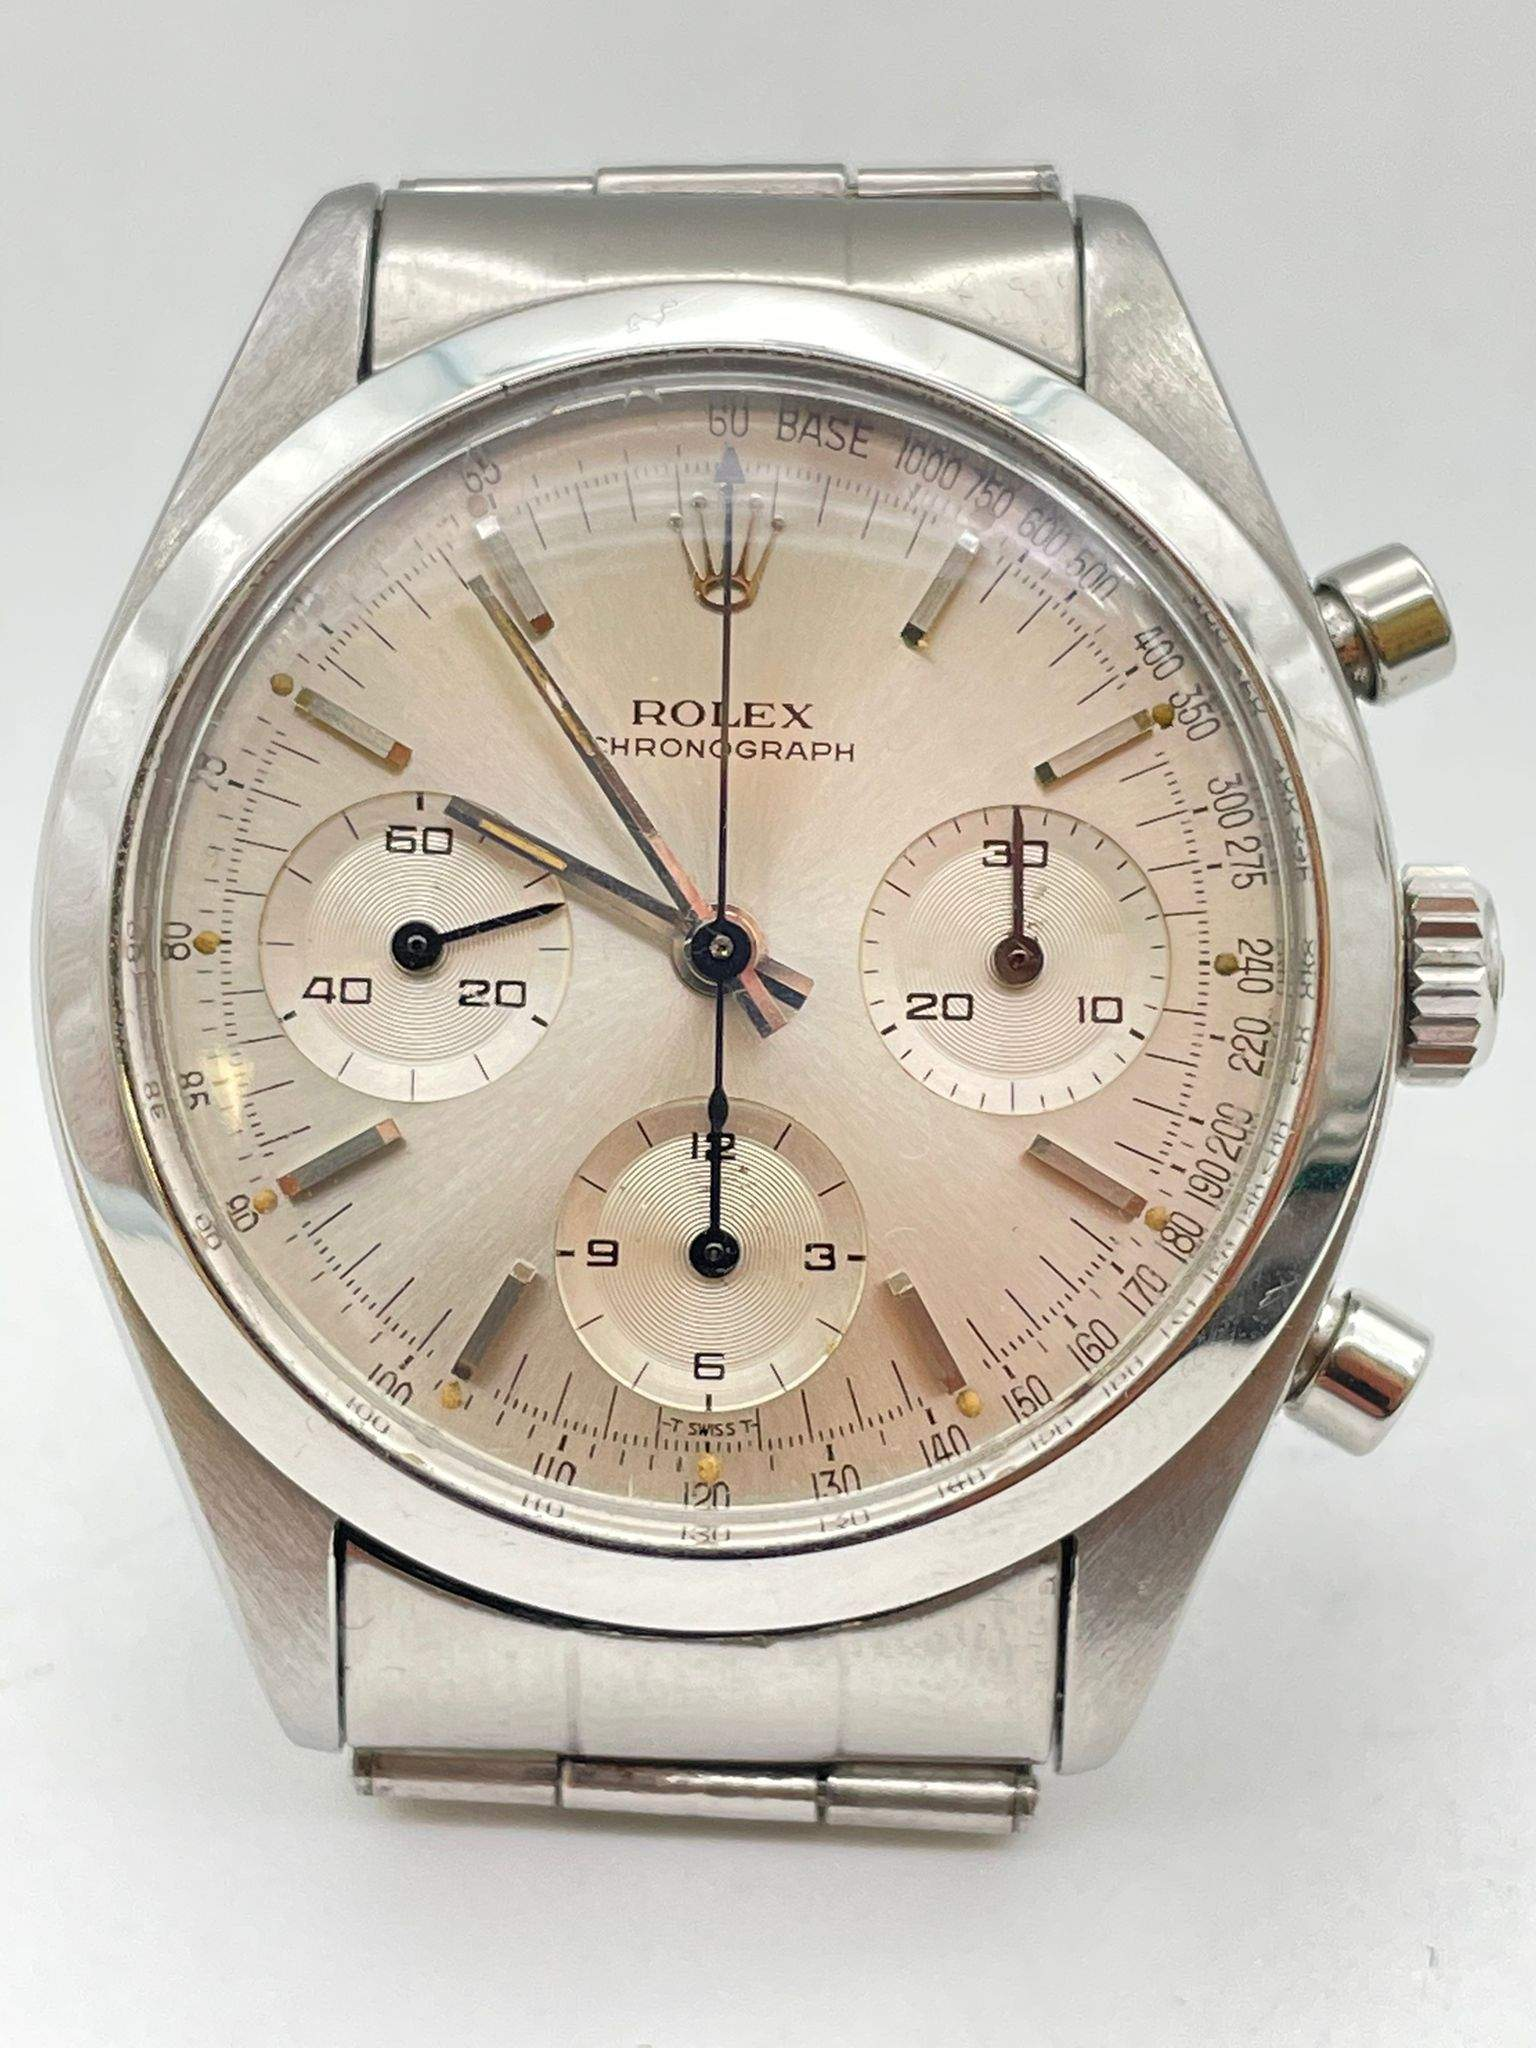 The Rolex ref. 6238 is an exceptionally rare vintage watch.